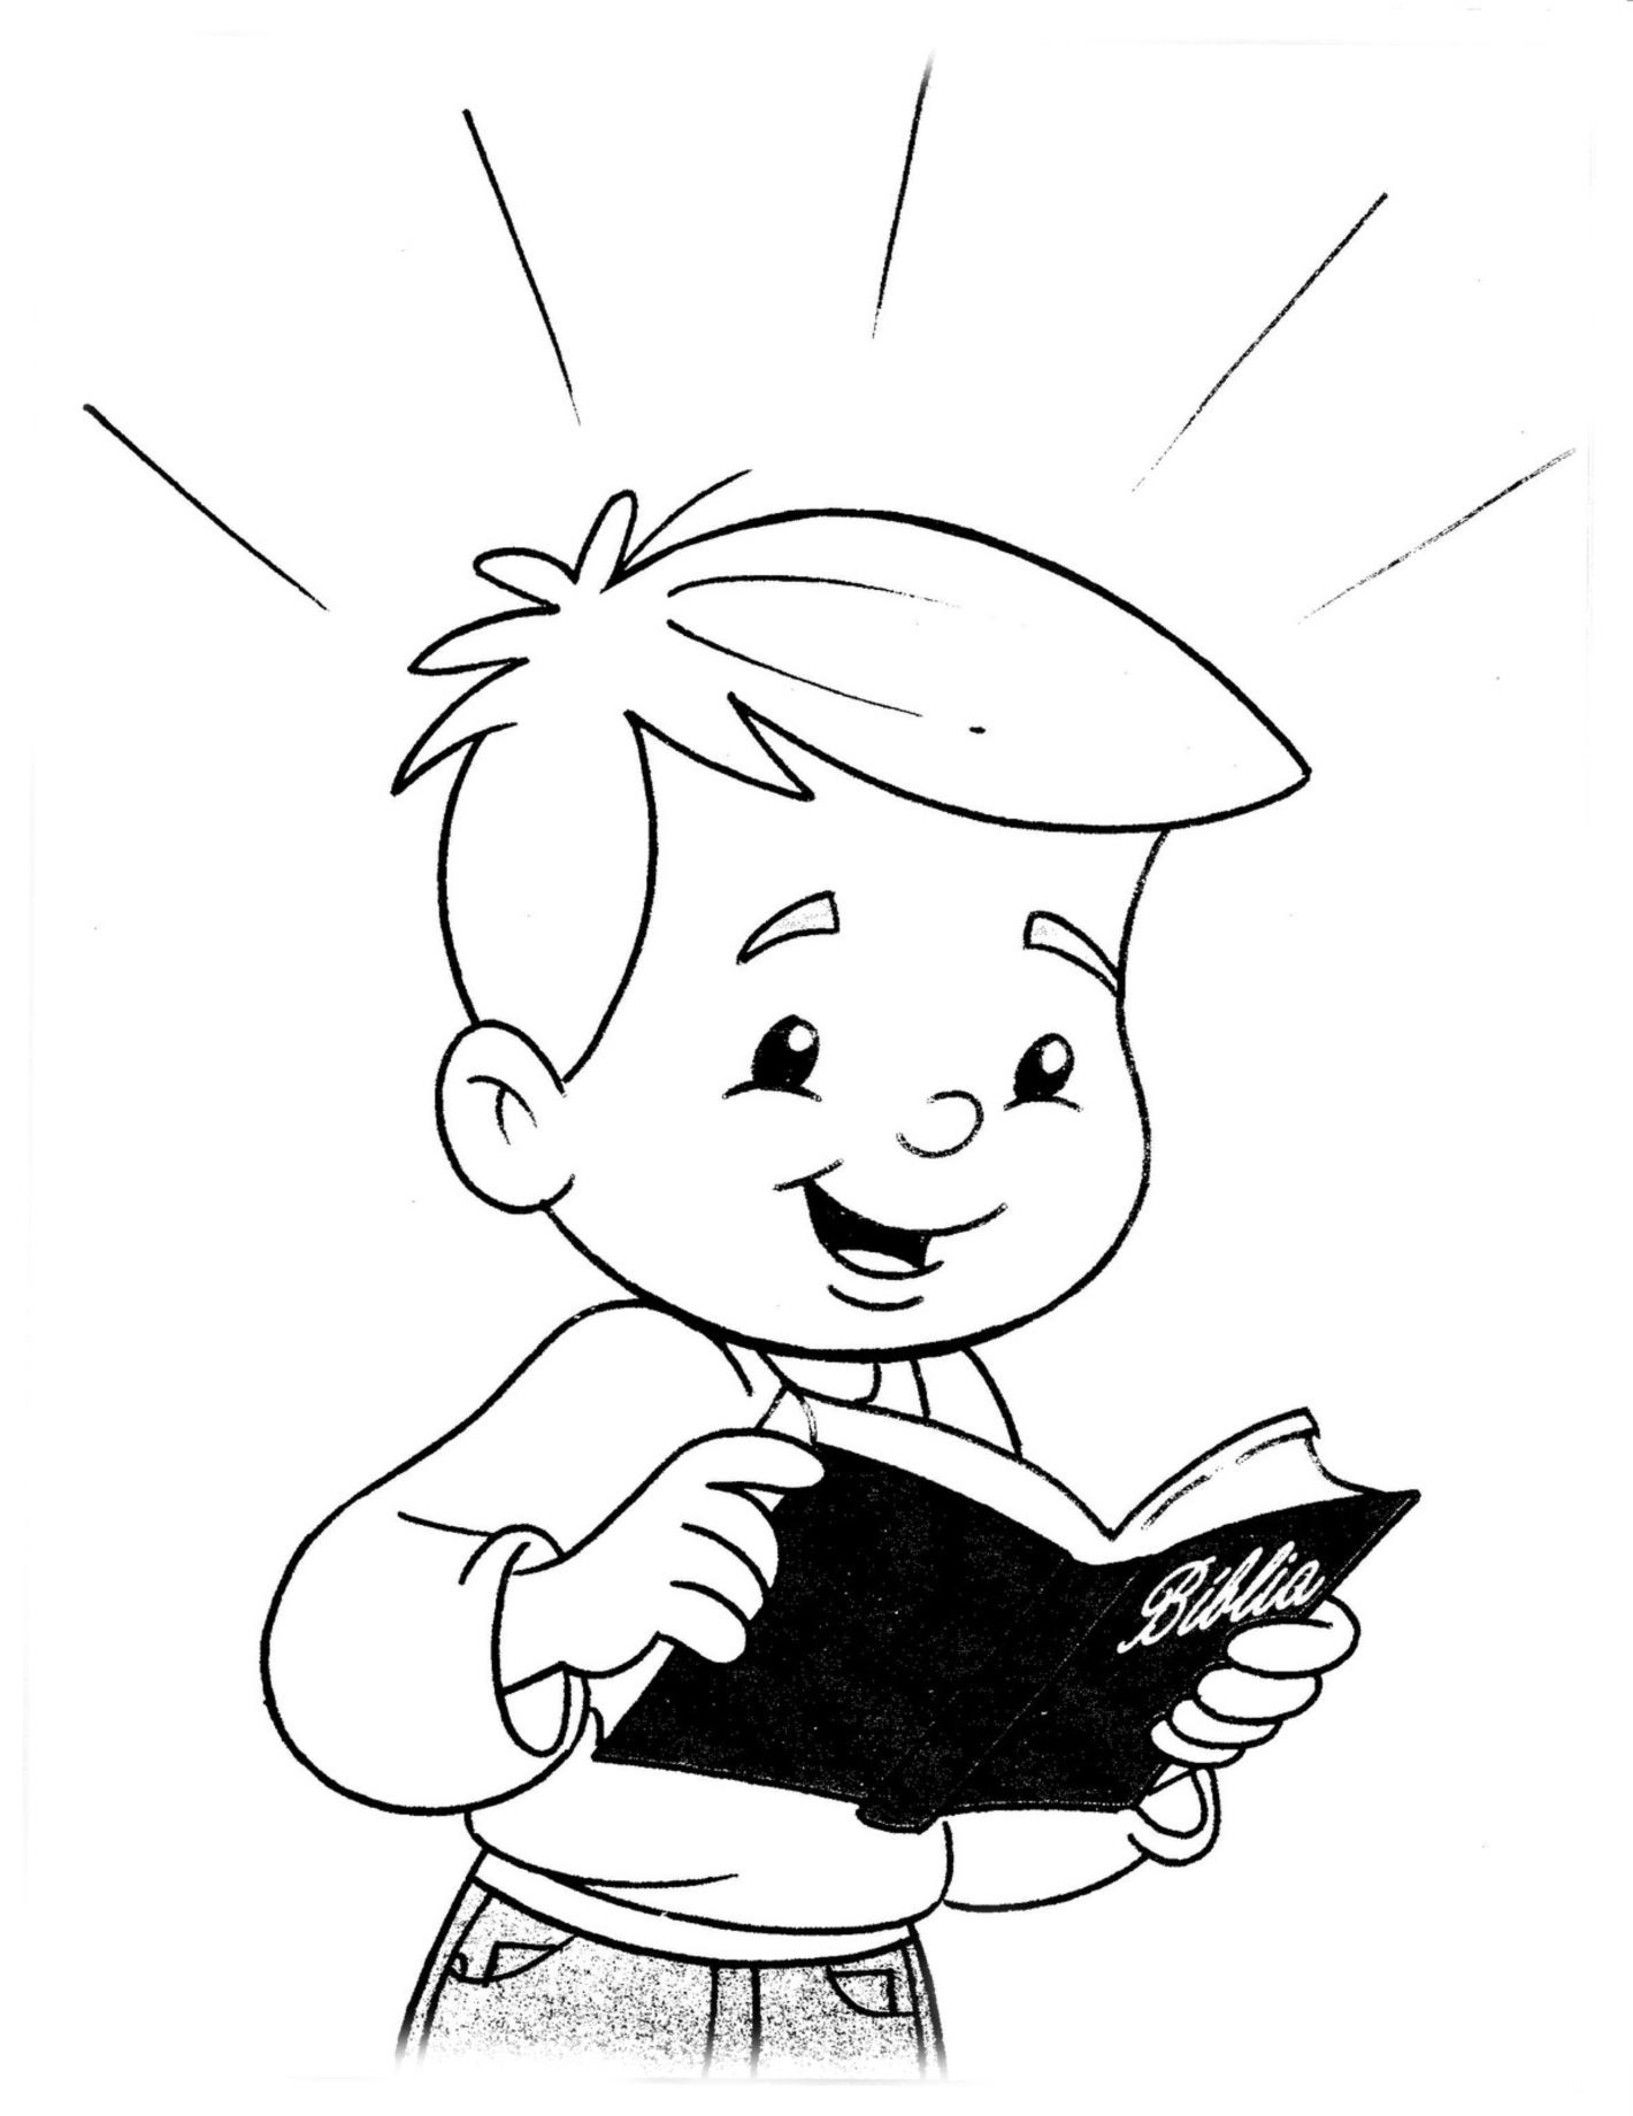 bible coloring pages for kids 5 | Niños | Pinterest | La biblia ...